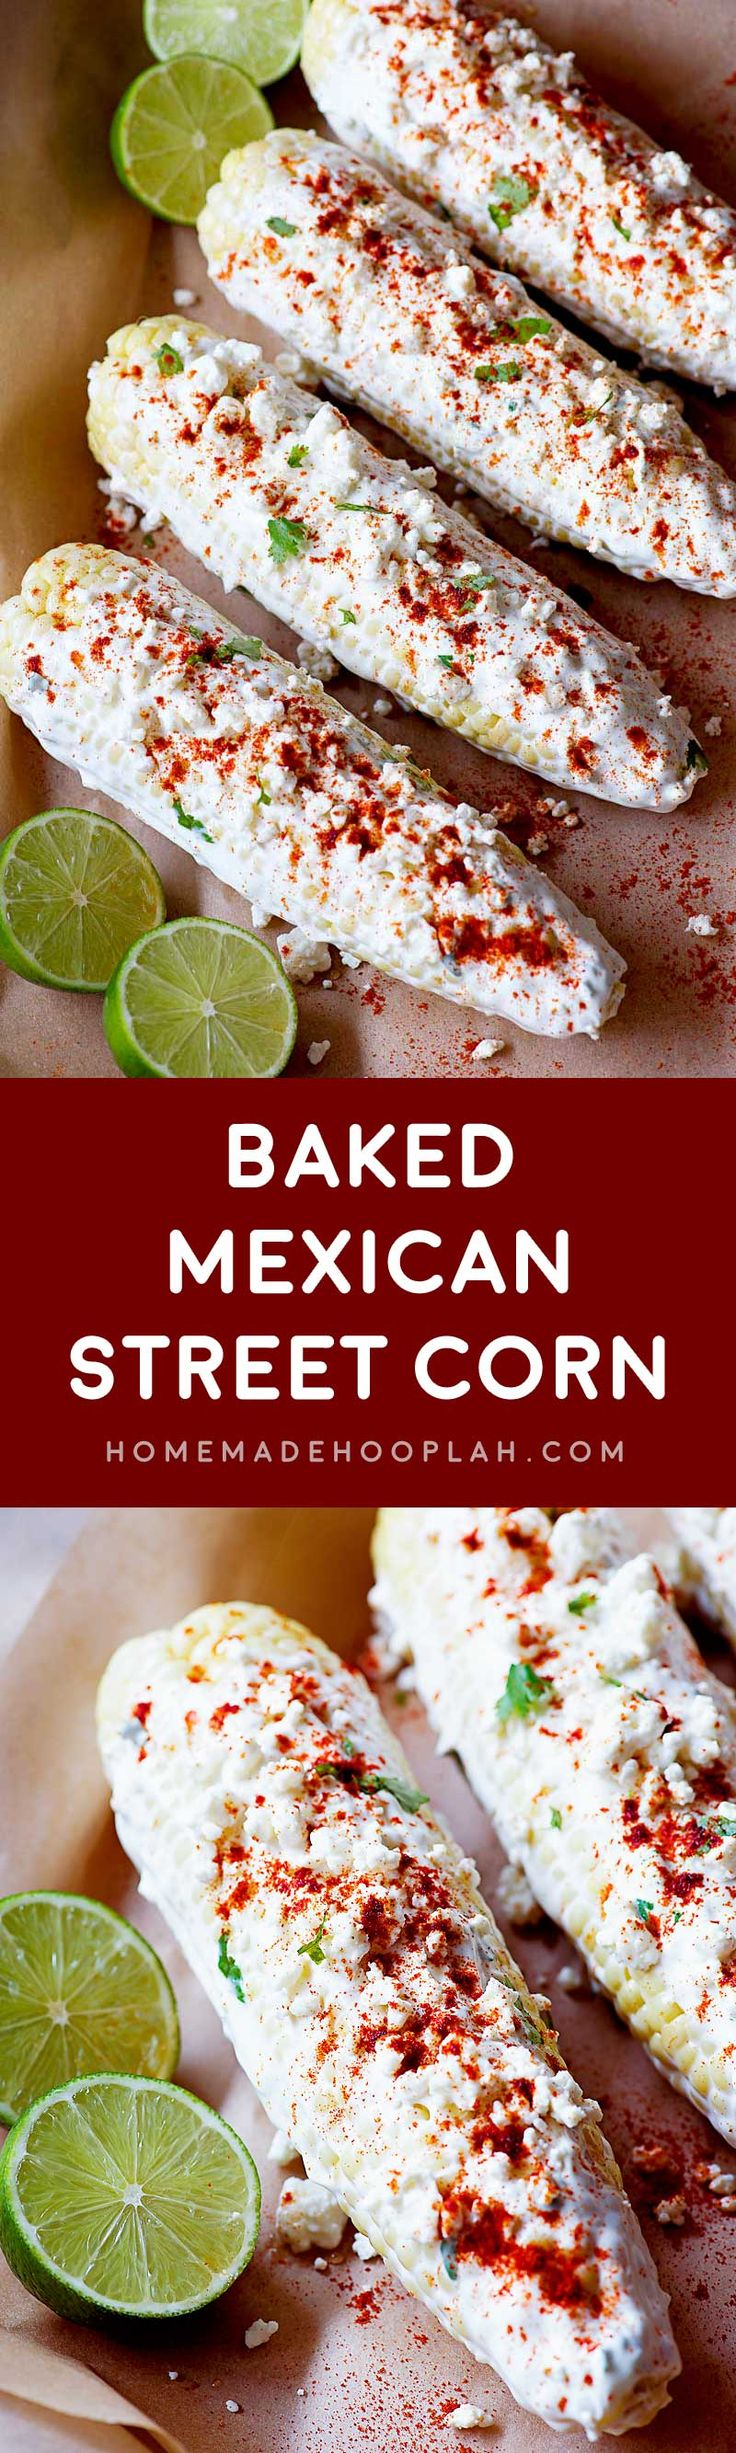 Baked Mexican Street Corn! Classic Elotes flavored with feta cheese and smoked paprika. The corn is also baked, making it easy to make this classic summer food year round! | HomemadeHooplah.com